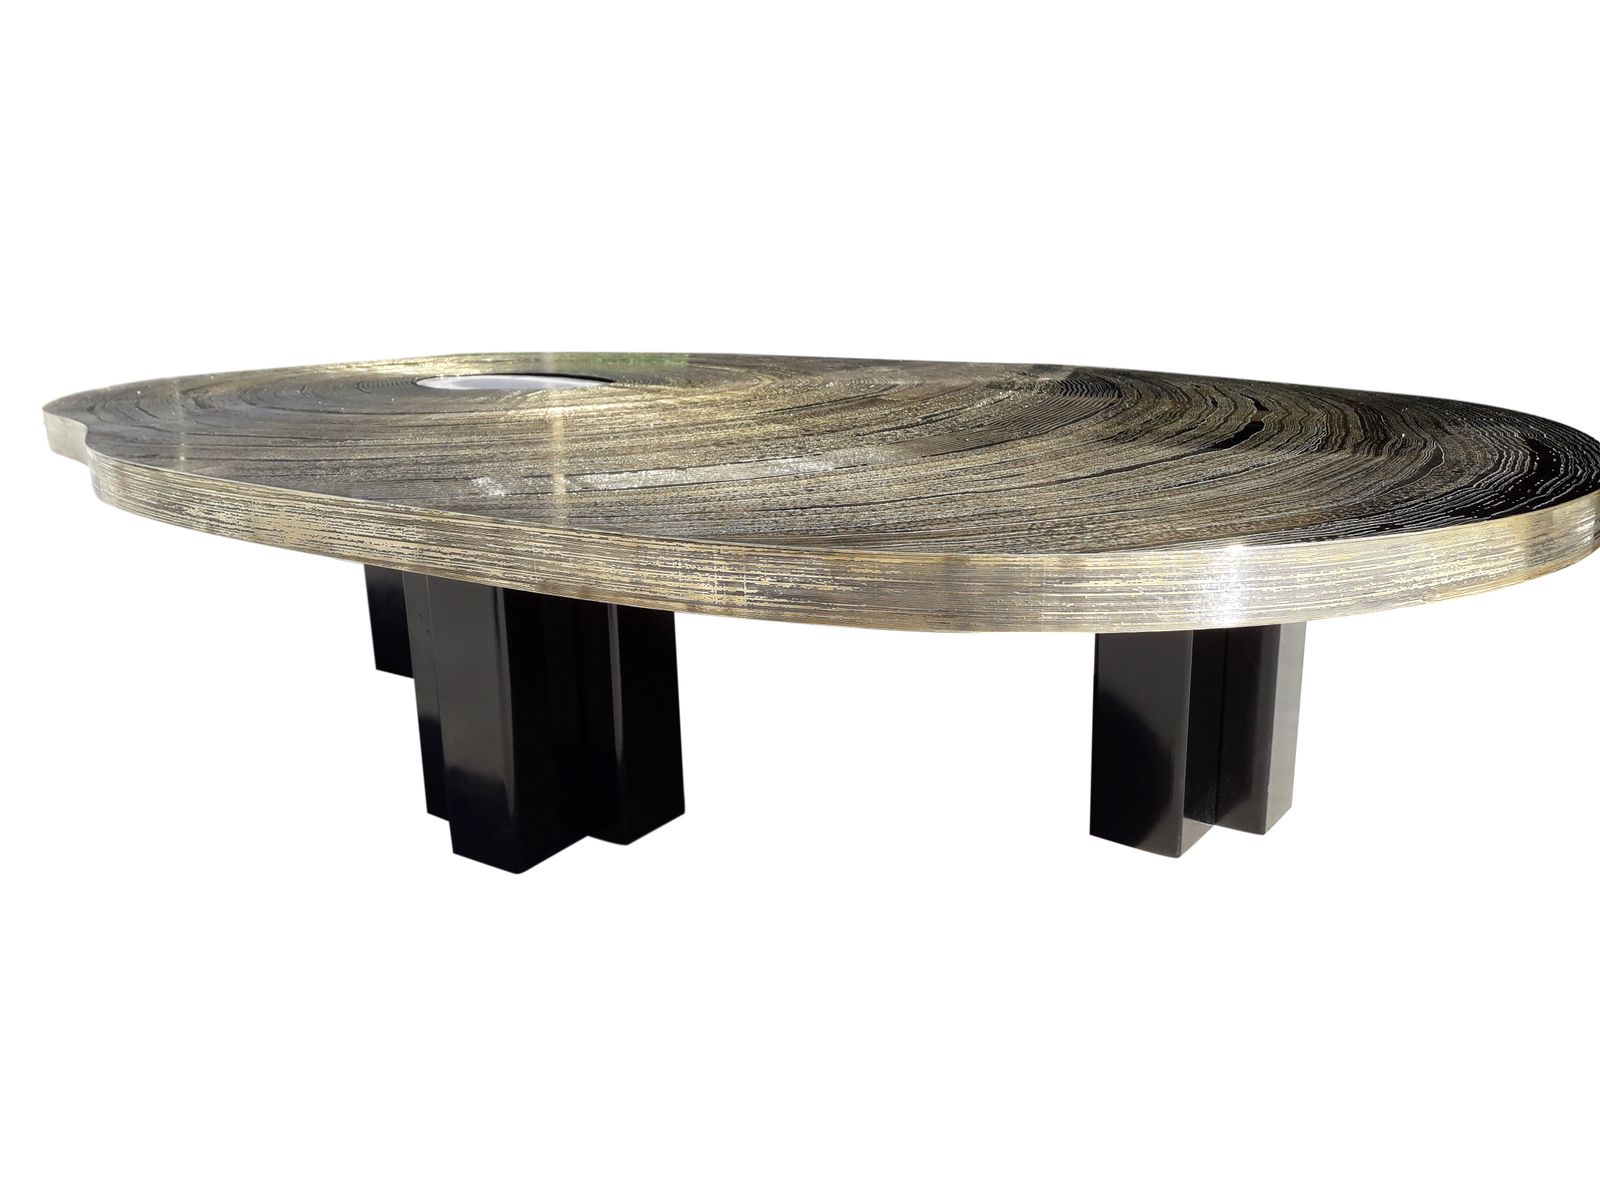 Vintage Brass Etched Coffee Table by Christian Krekels 1970s for